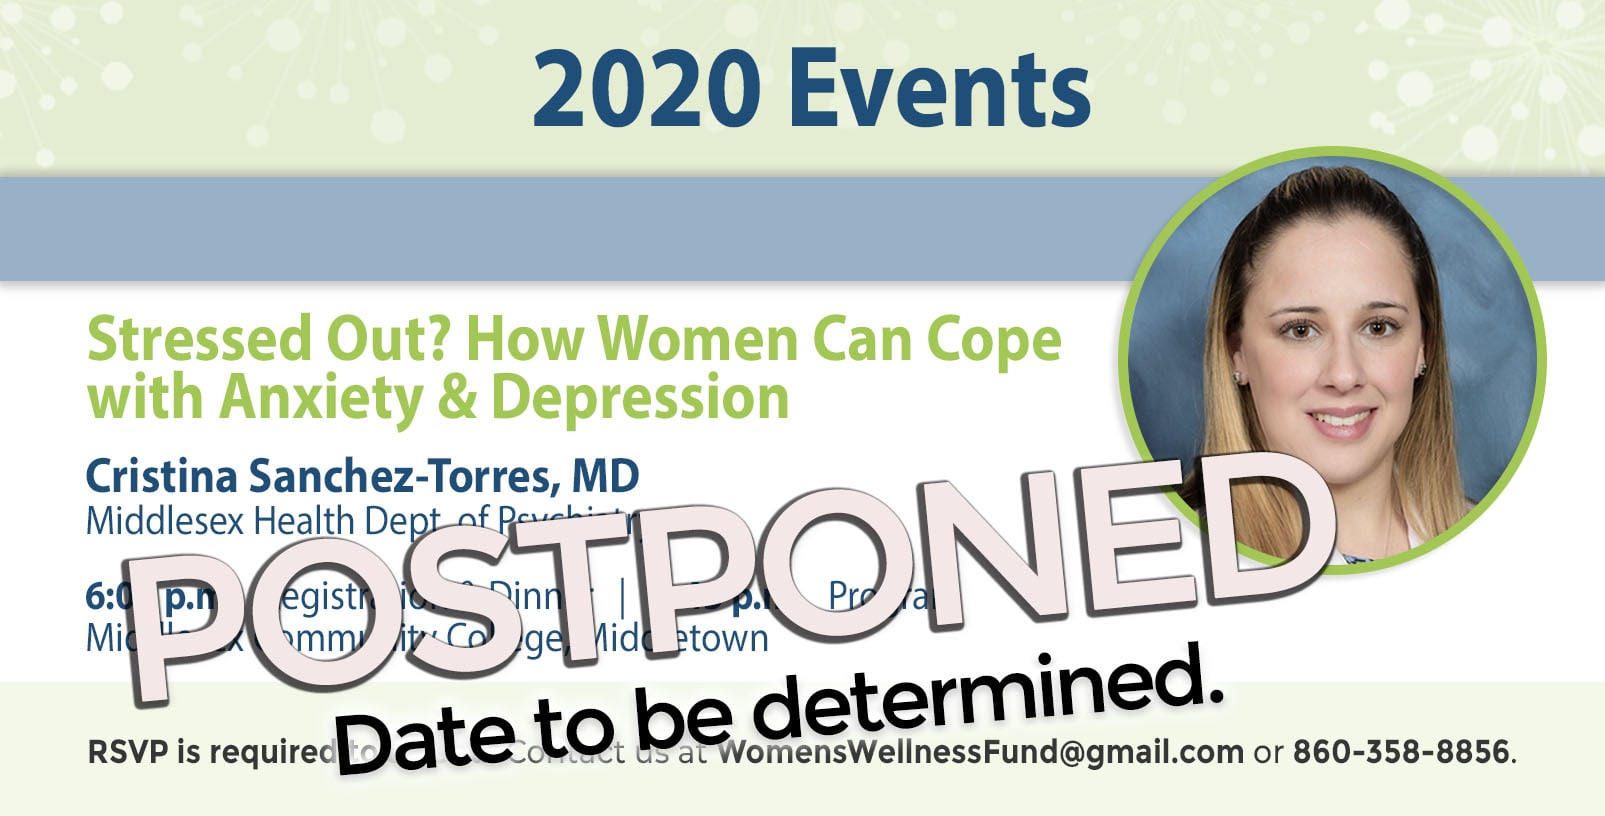 Our March 26th event has been postponed.